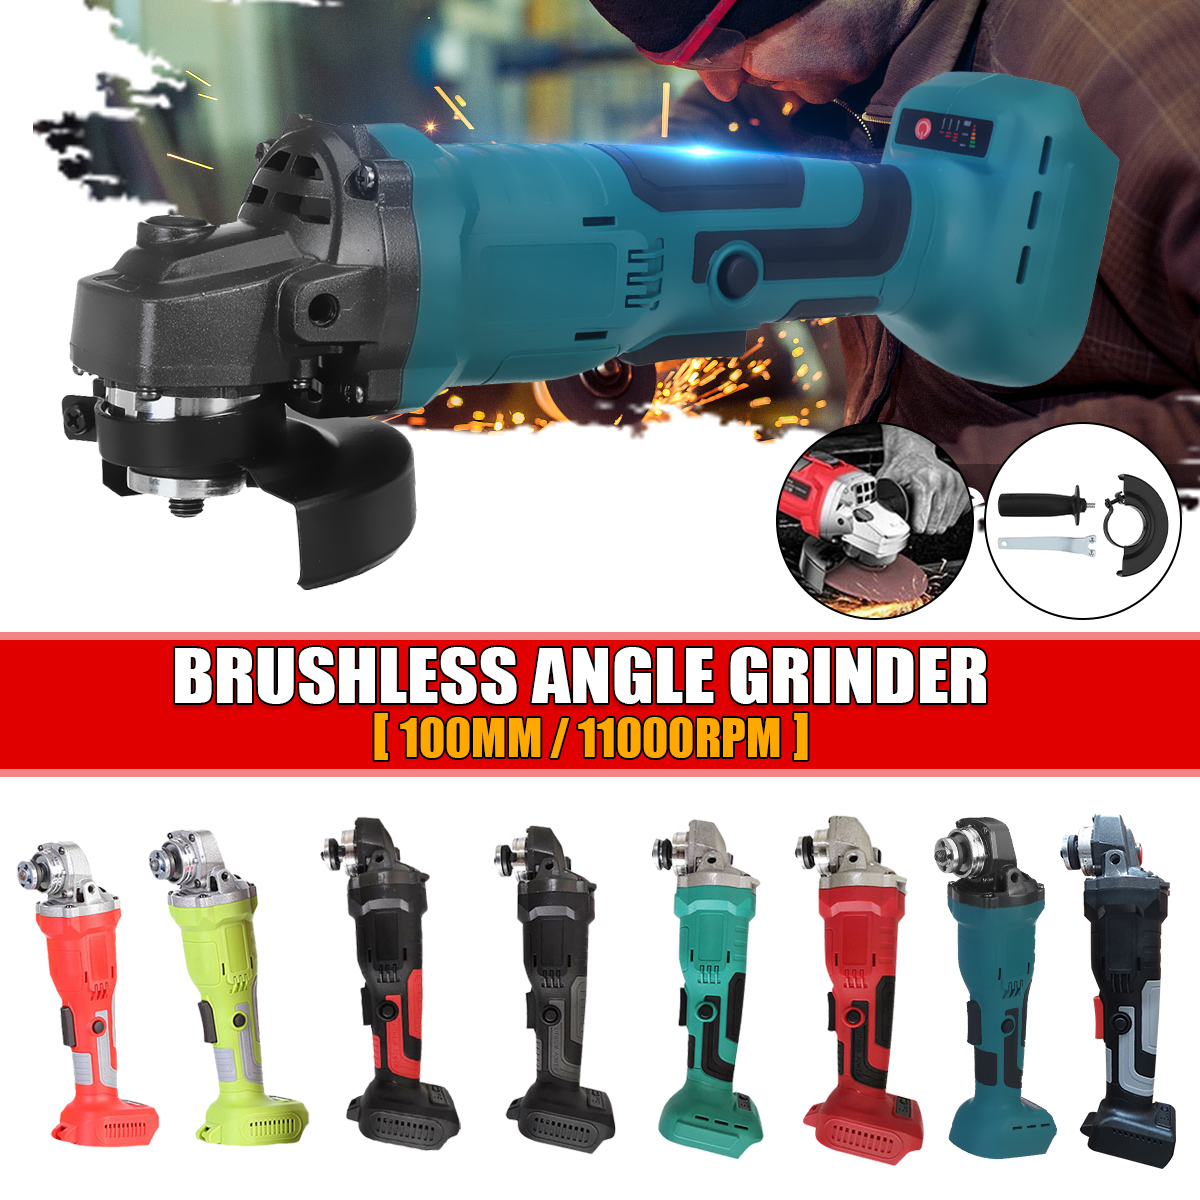 800W 18V Brushless Cordless Impact Angle Grinder 100mm Home DIY Power Tool Cutting Grinding Machine Polisher For Makita Battery